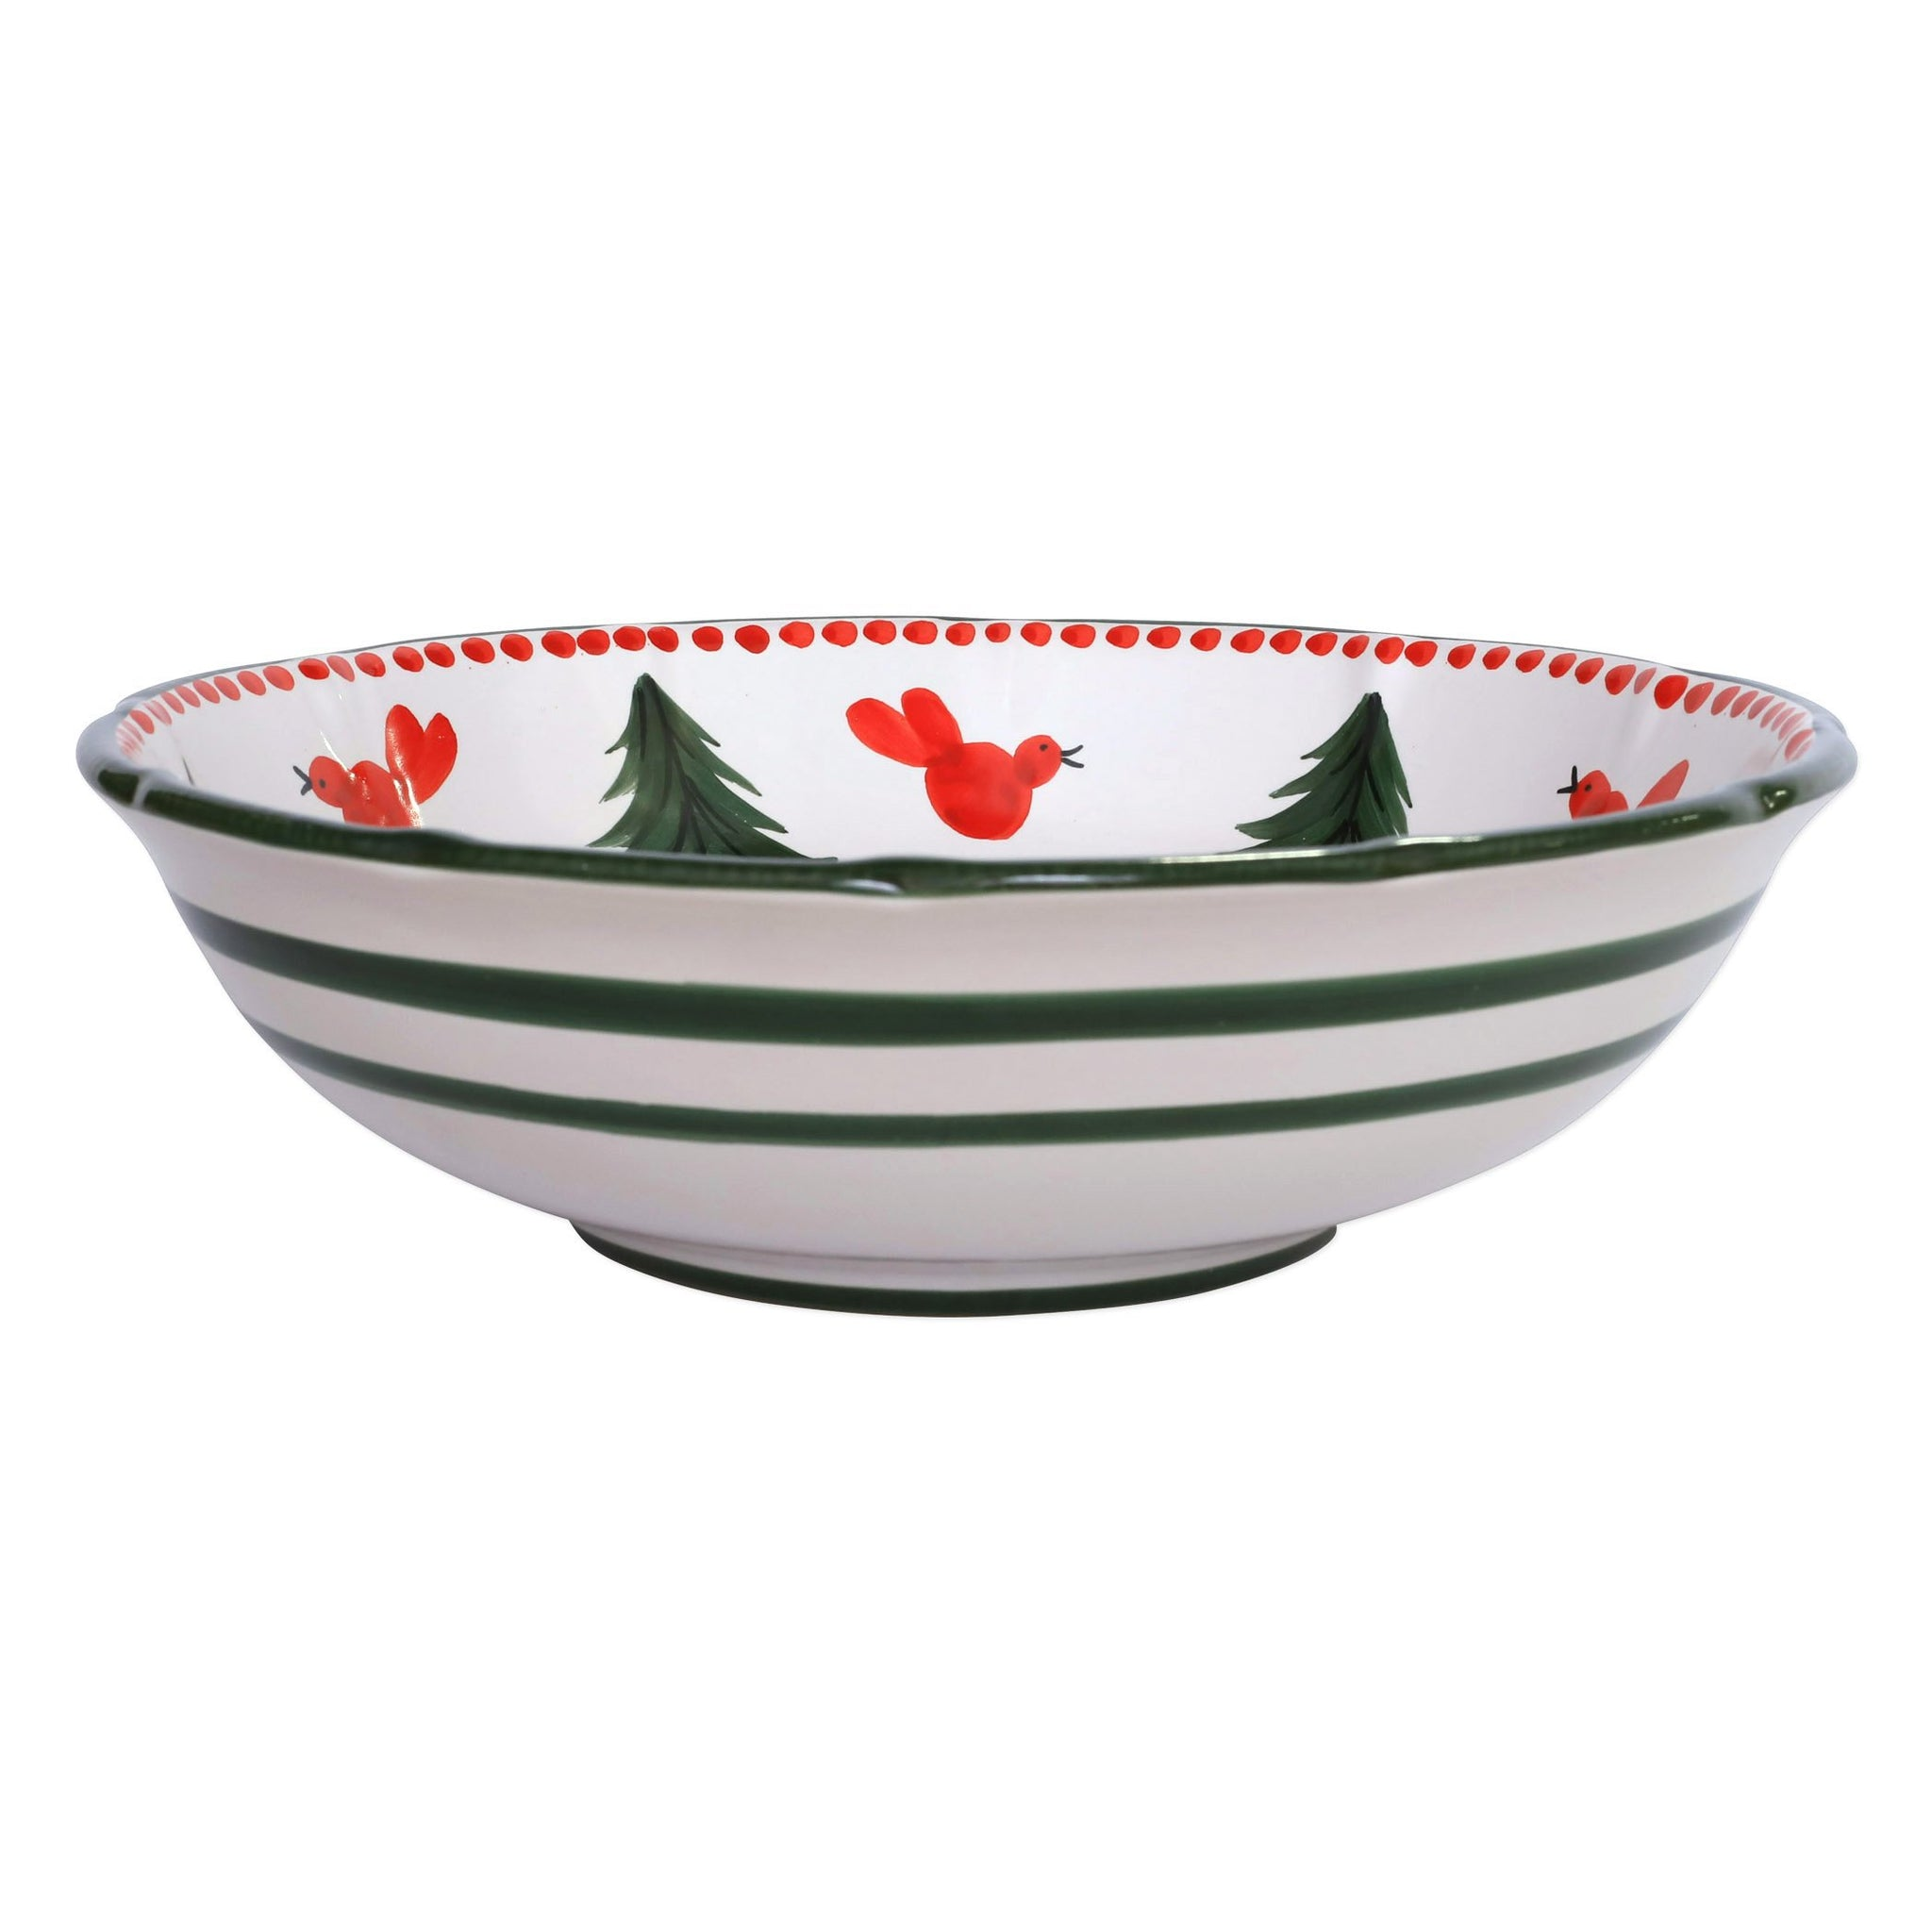 Campagna Uccello Rosso Large Serving Bowl